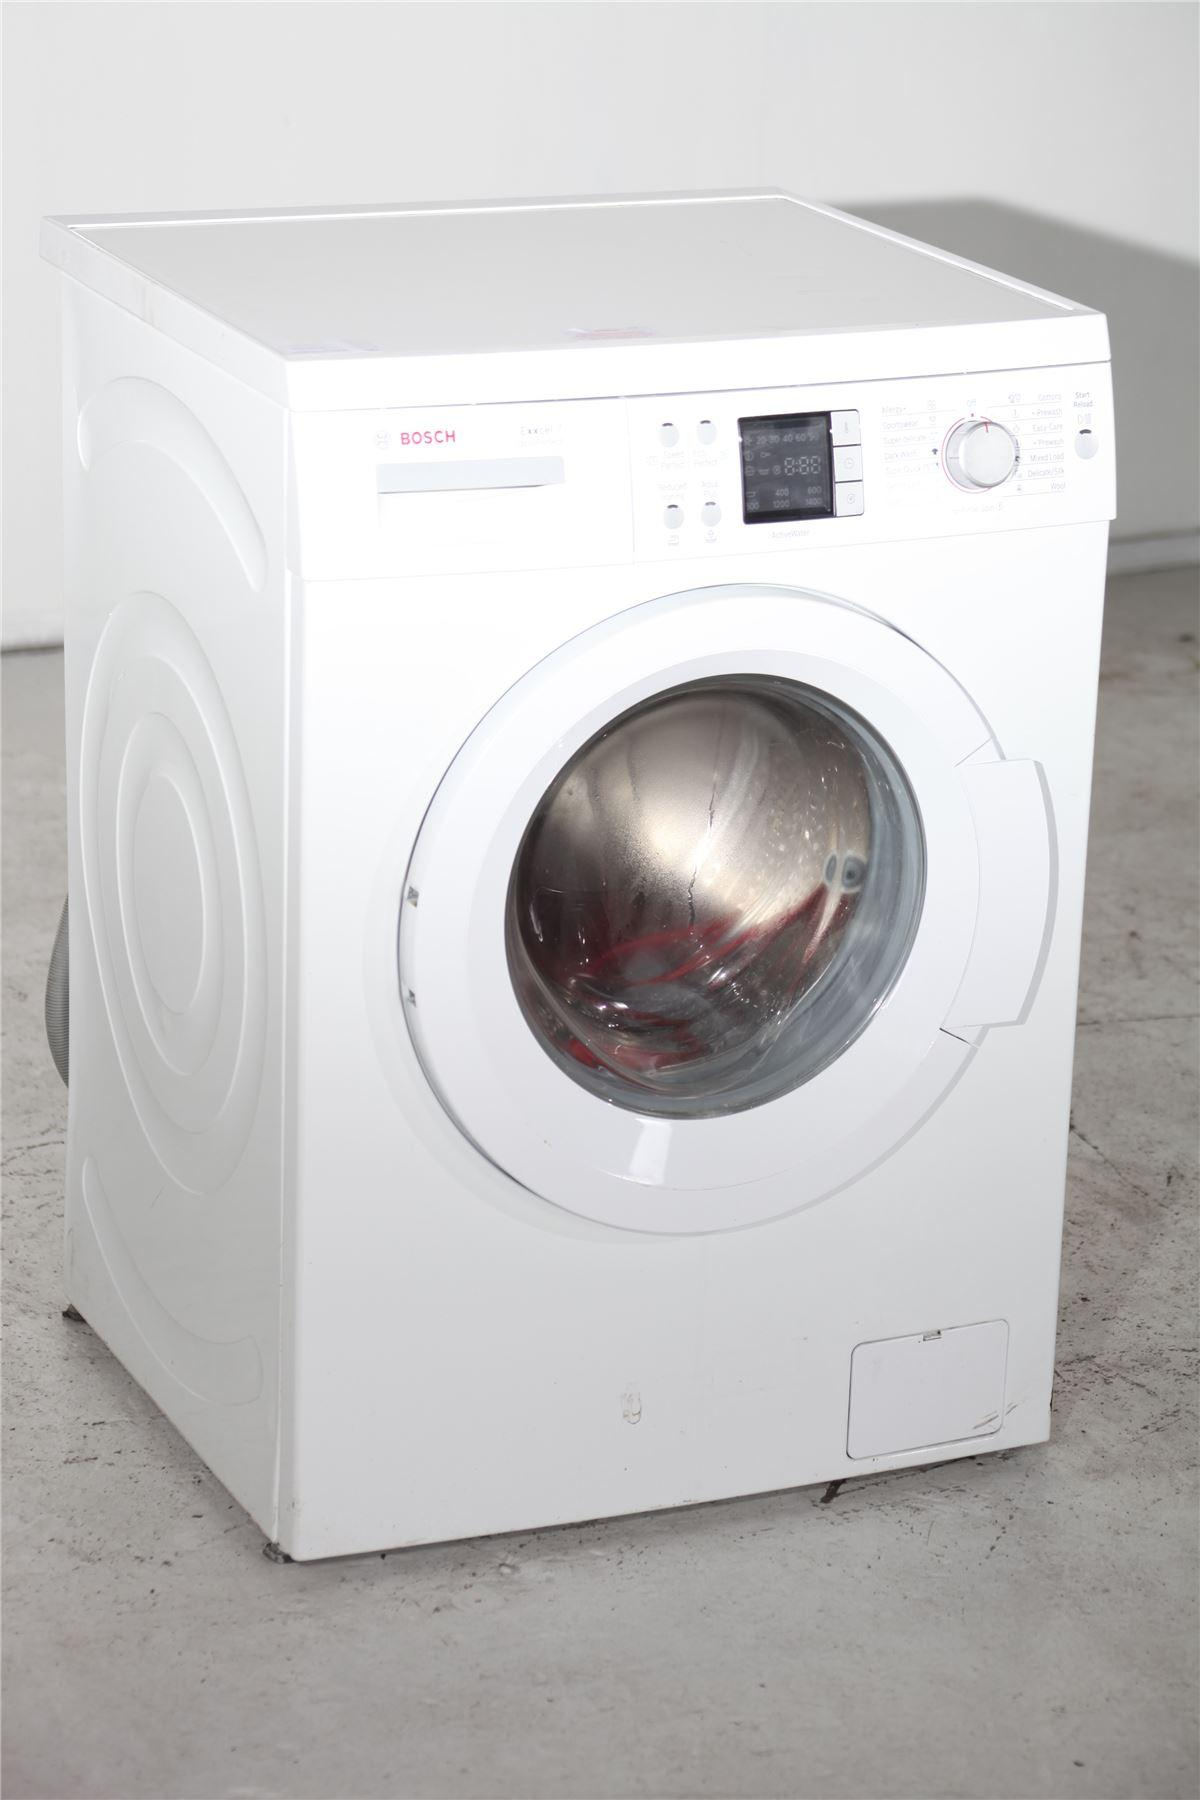 machine a laver bosch 7kg bosch 7kg washing machine. Black Bedroom Furniture Sets. Home Design Ideas